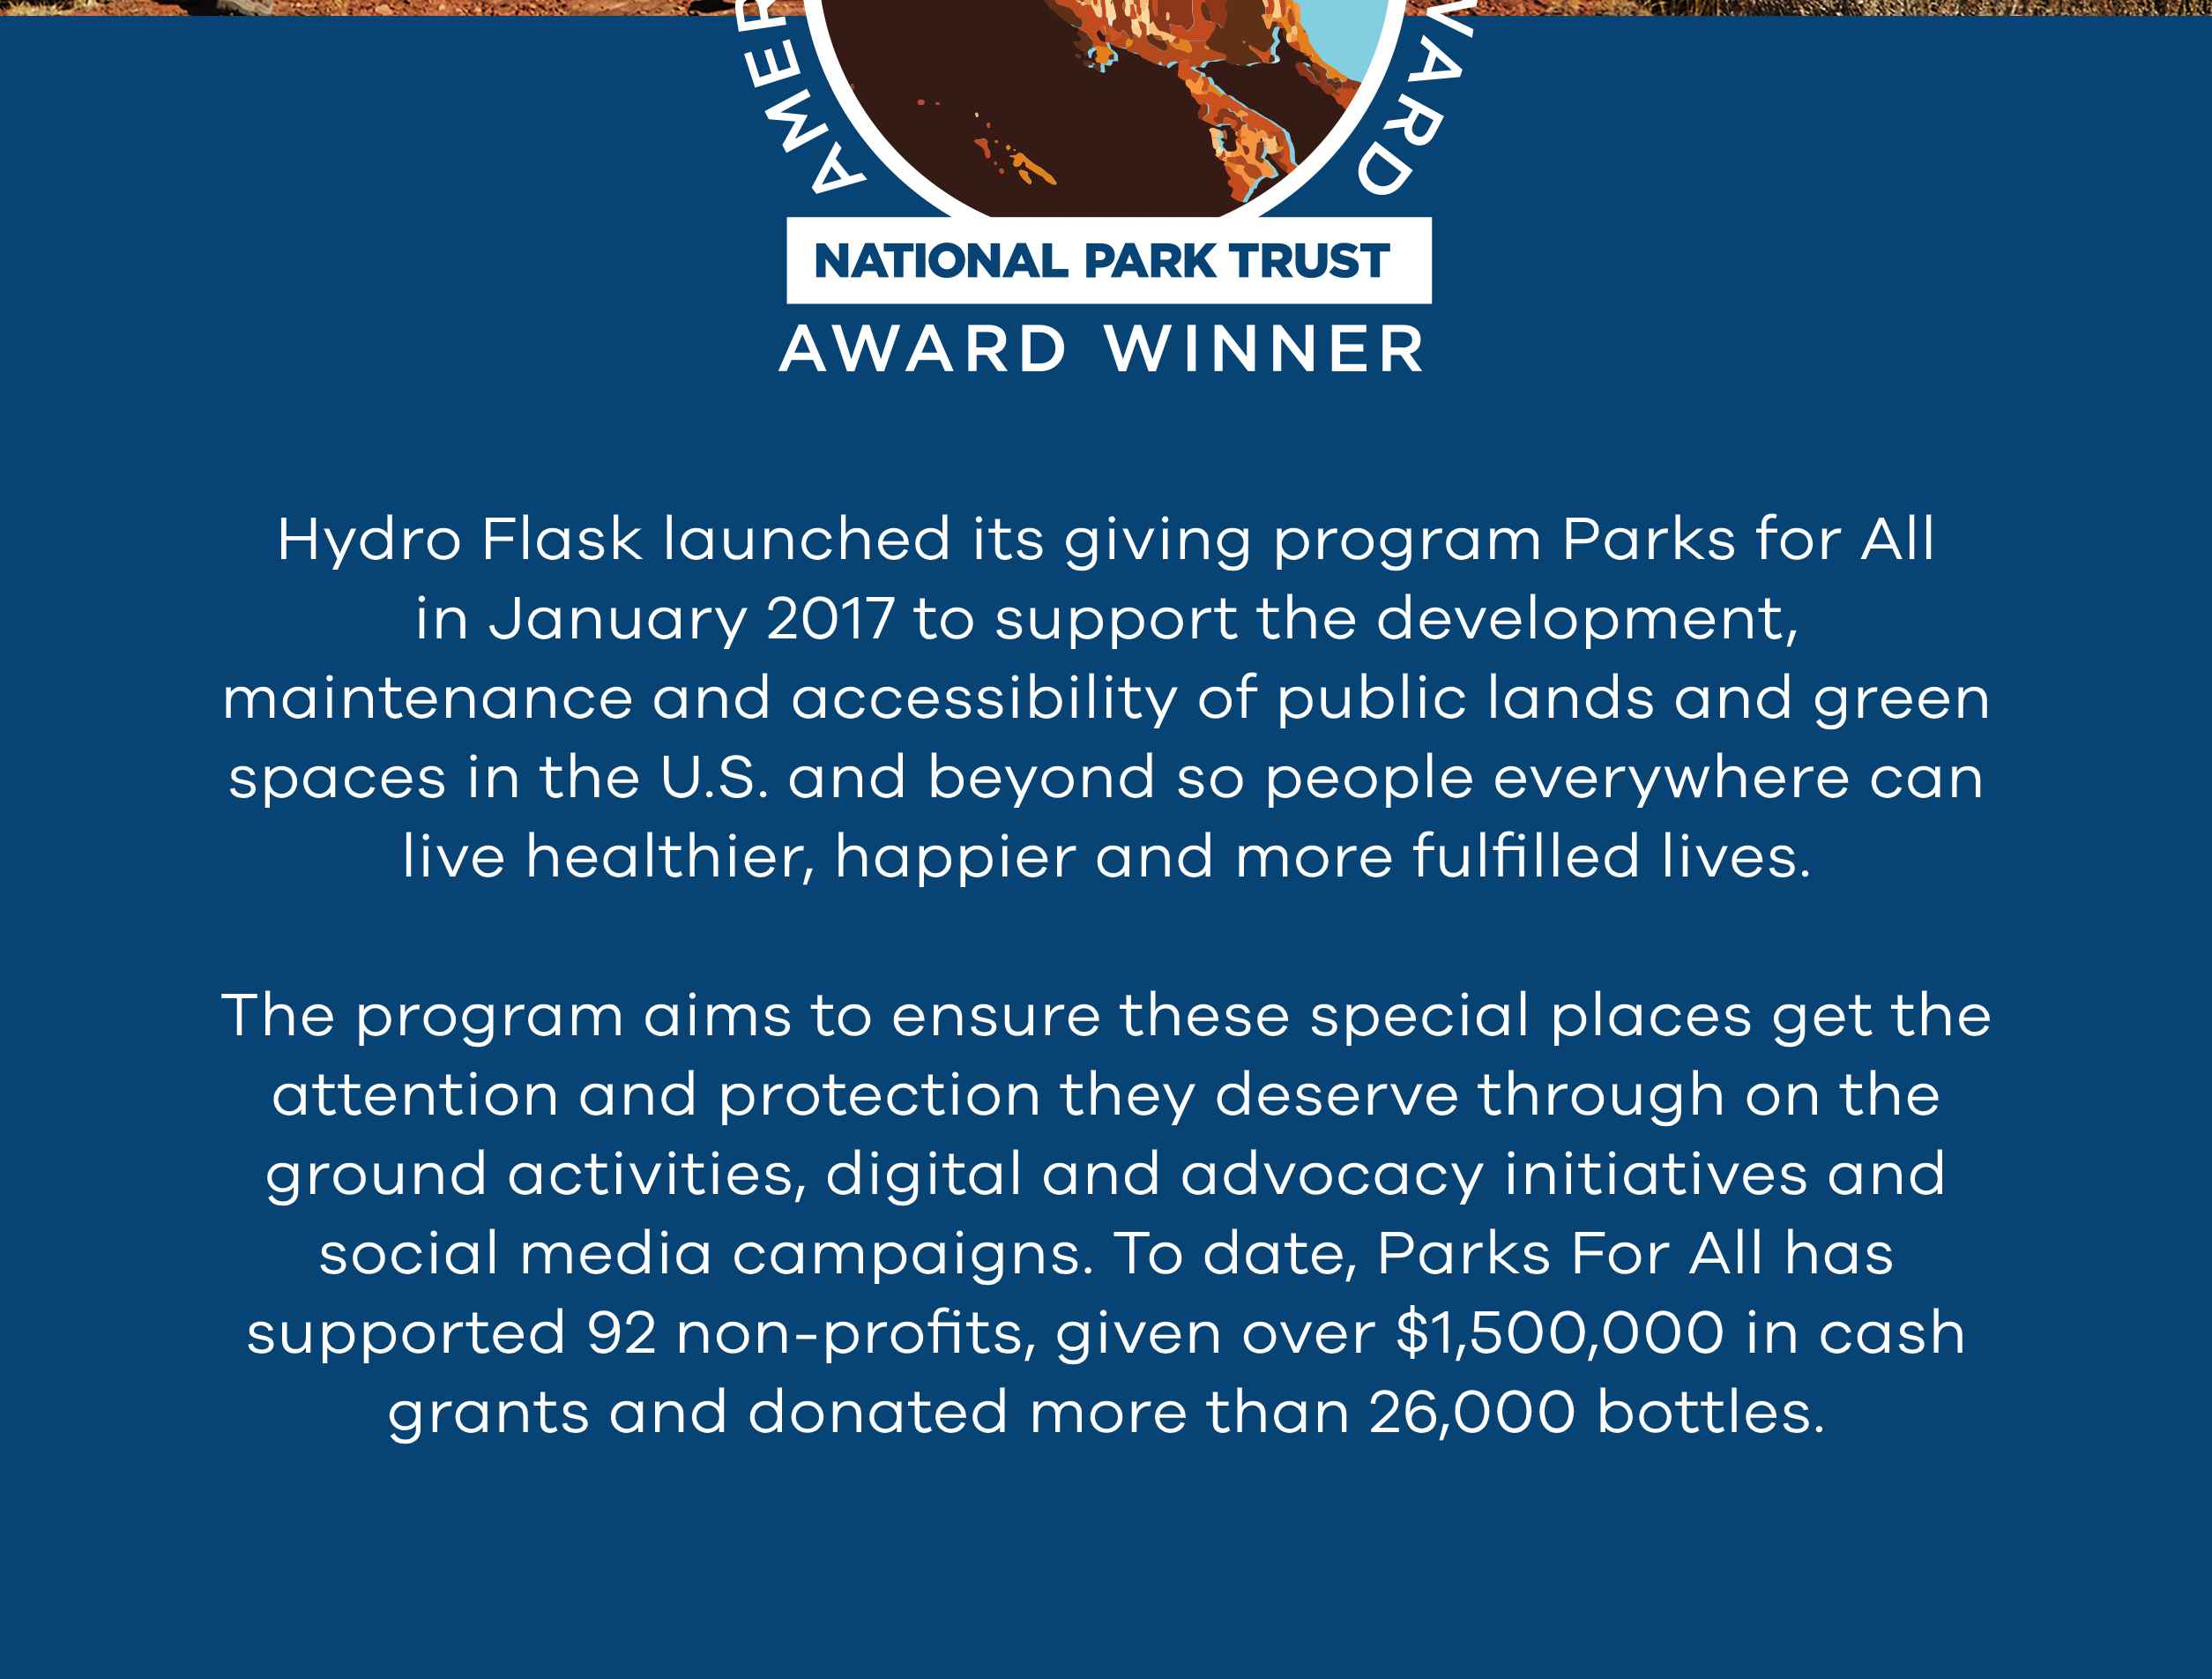 Hydro Flask launched its giving program Parks for All in January 2017 to support the development, maintenance and accessibility of public lands and green spaces in the U.S. and beyond so people everywhere can live healthier, happier and more fulfilled lives. The program aims to ensure these special places get the attention and protection they deserve through on the ground activities, digital and advocacy initiatives and social media campaigns. To date Parks for All has supported 92 non-profits , given over $1,500,000 in cash grants and donated more than 26,000 bottles.